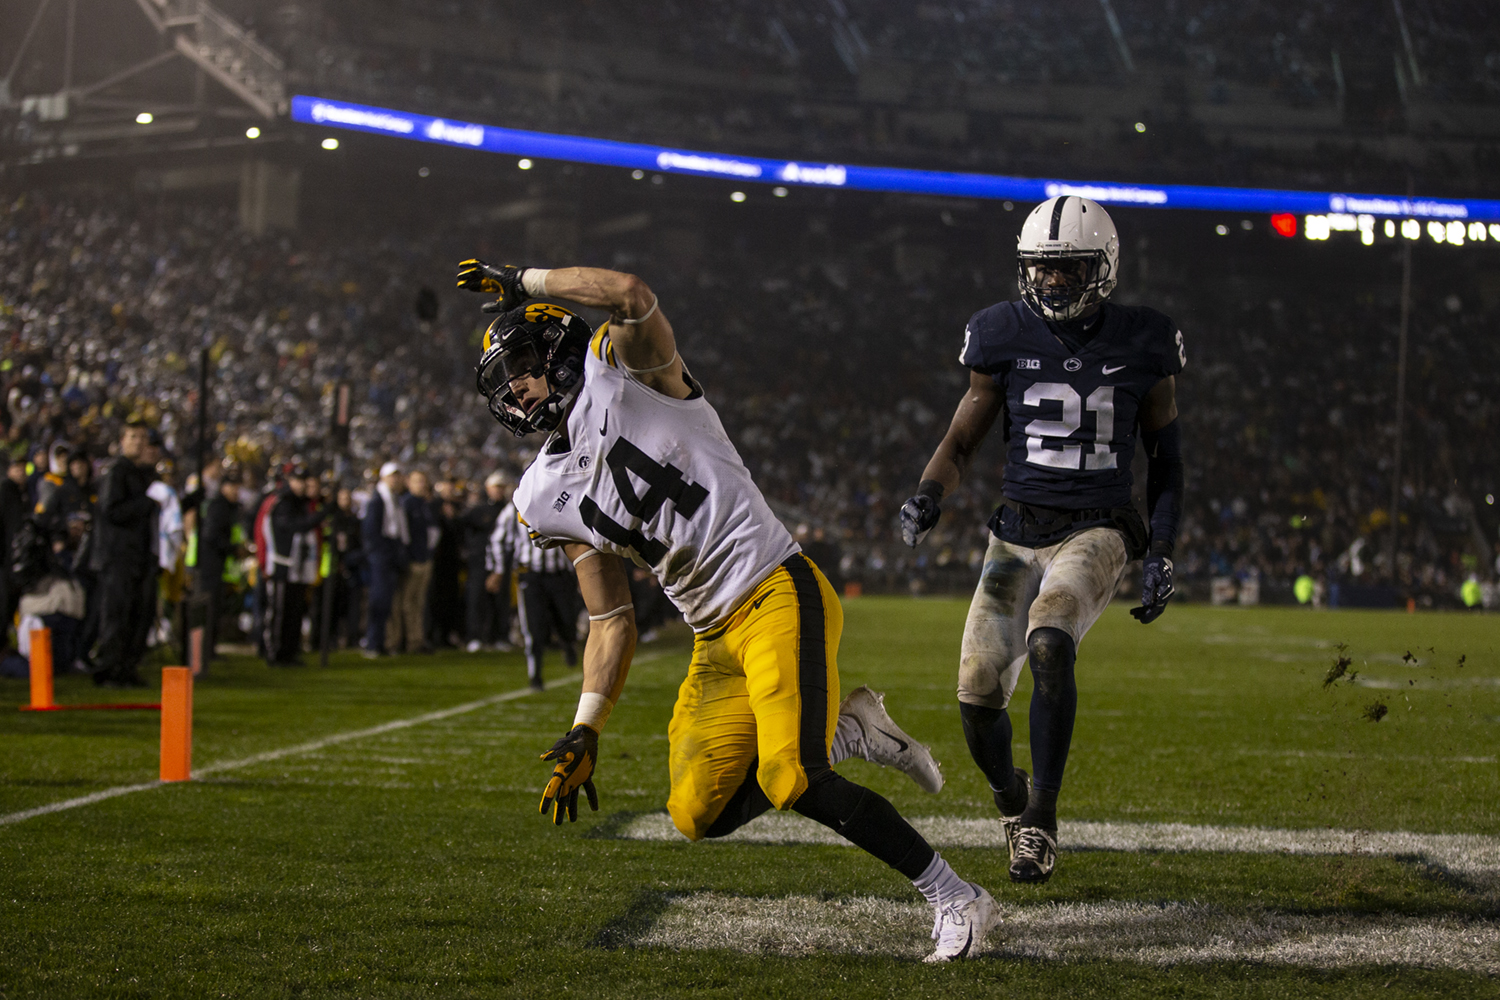 Iowa wide receiver Kyle Groeneweg (14) trips as the ball sails over his head and out of bounds during Iowa's game against Penn State at Beaver Stadium on Saturday, October 27, 2018. The Nittany Lions defeated the Hawkeyes 30-24.